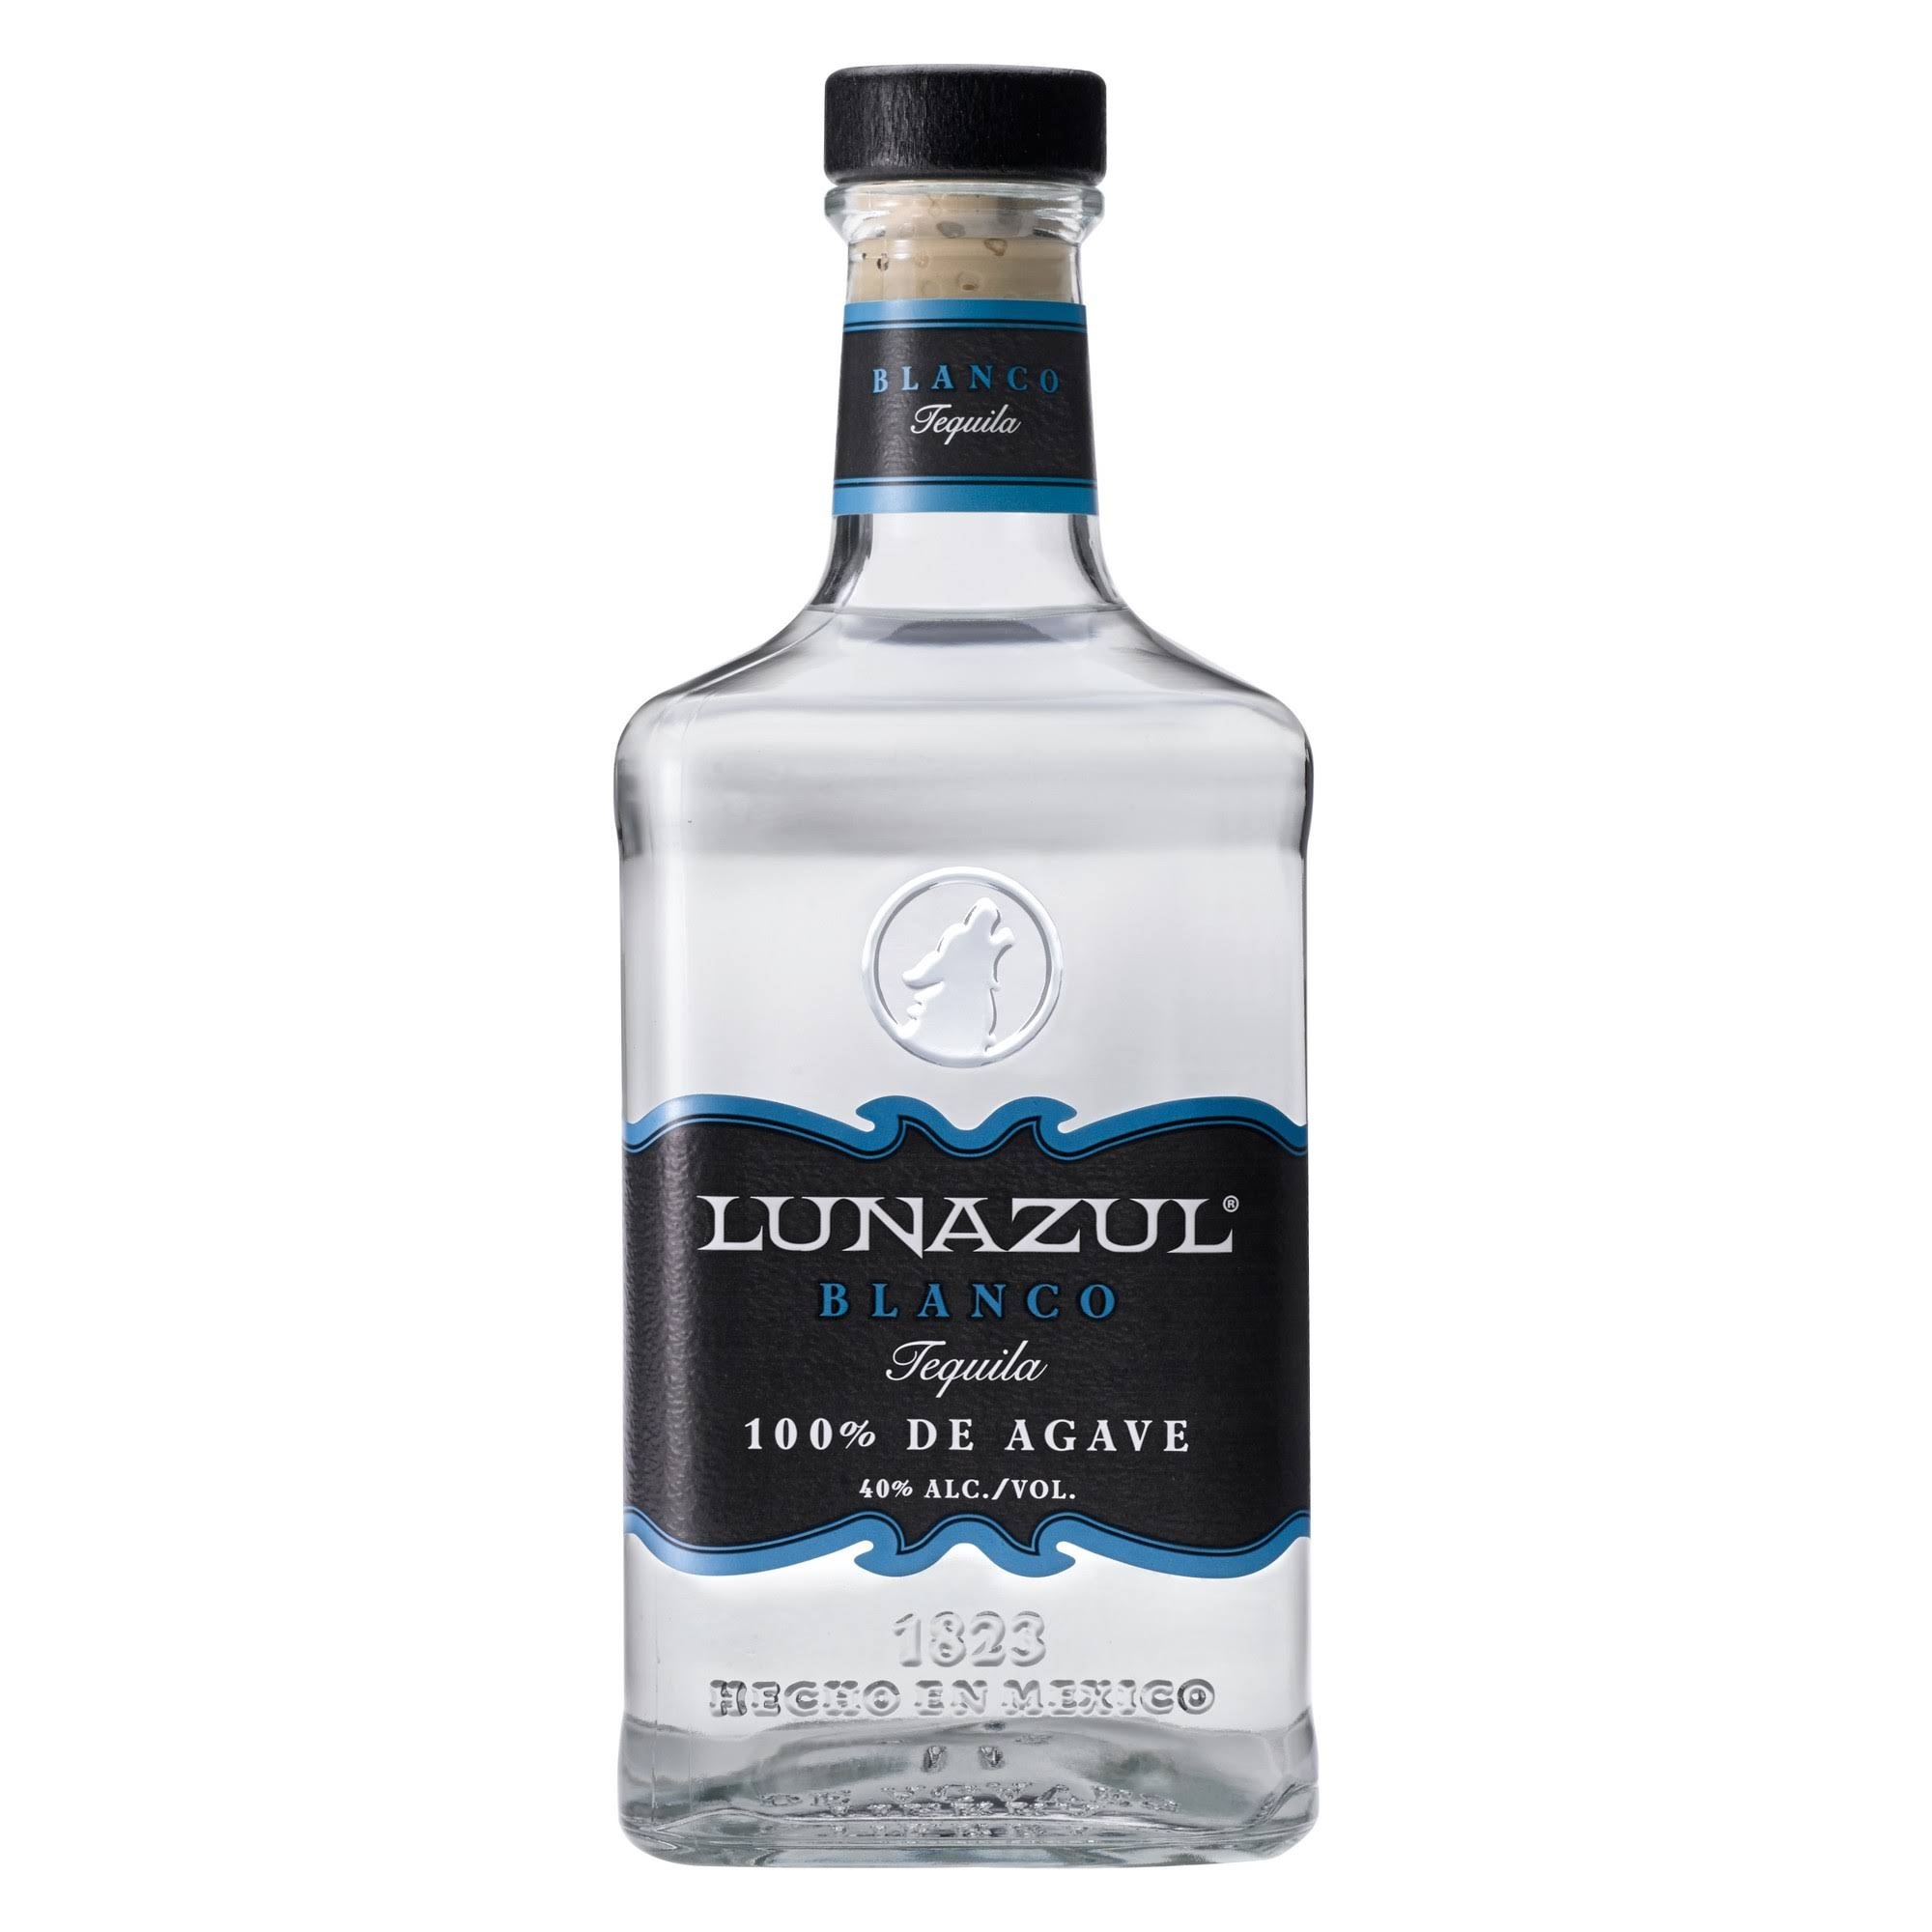 Lunazul Blanco Tequila - 750ml